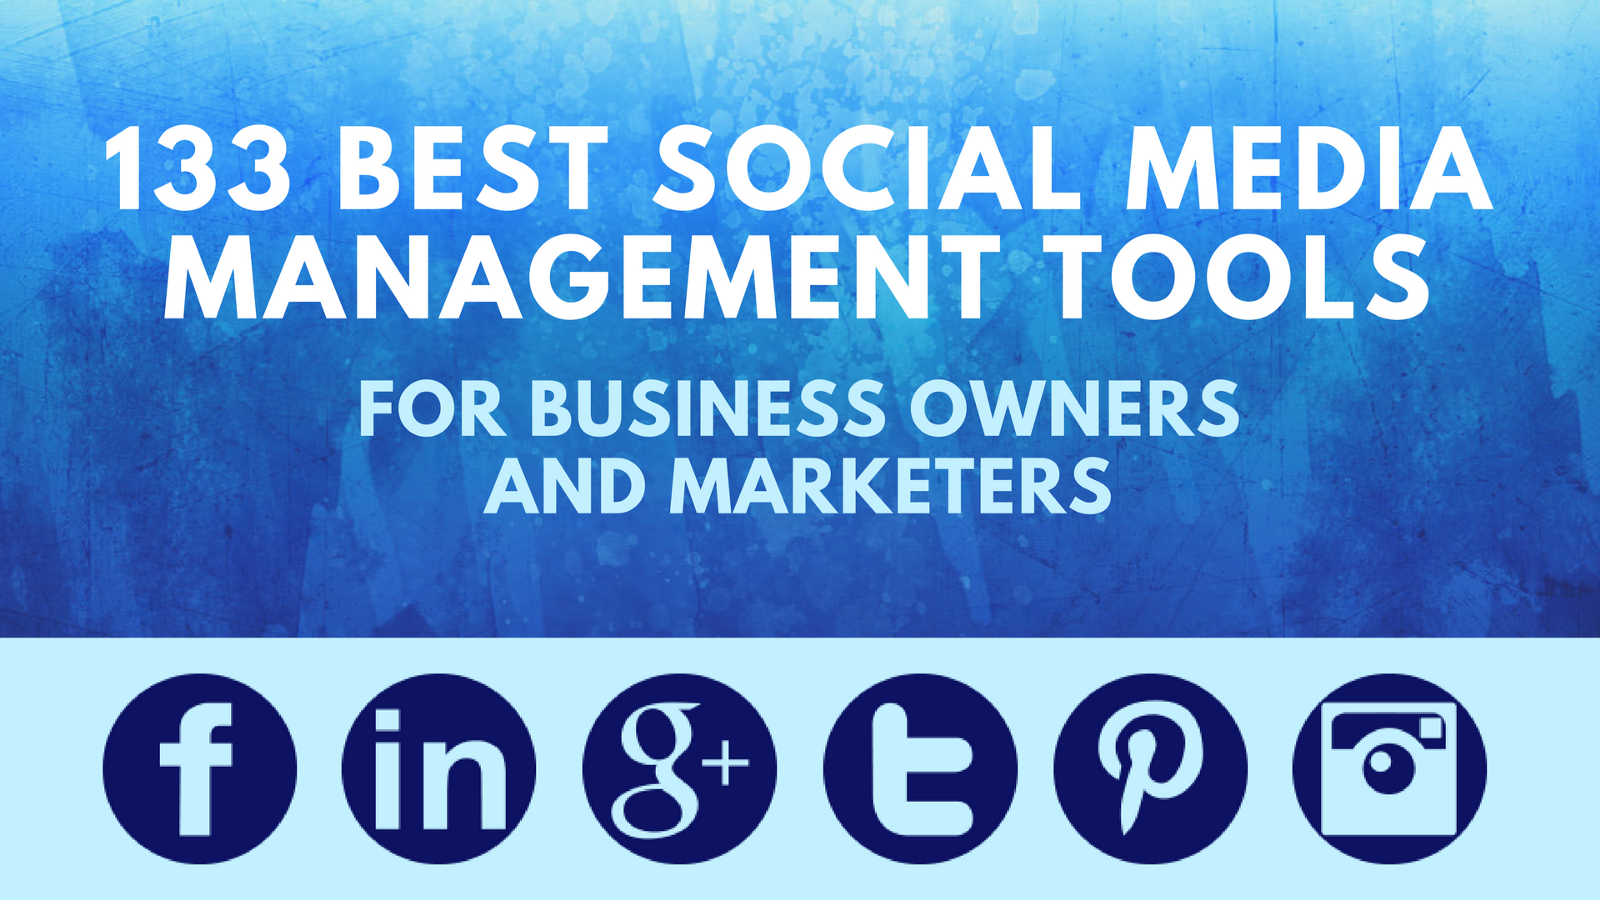 133 Best Social Media Management Tools for Business Owners and Marketers